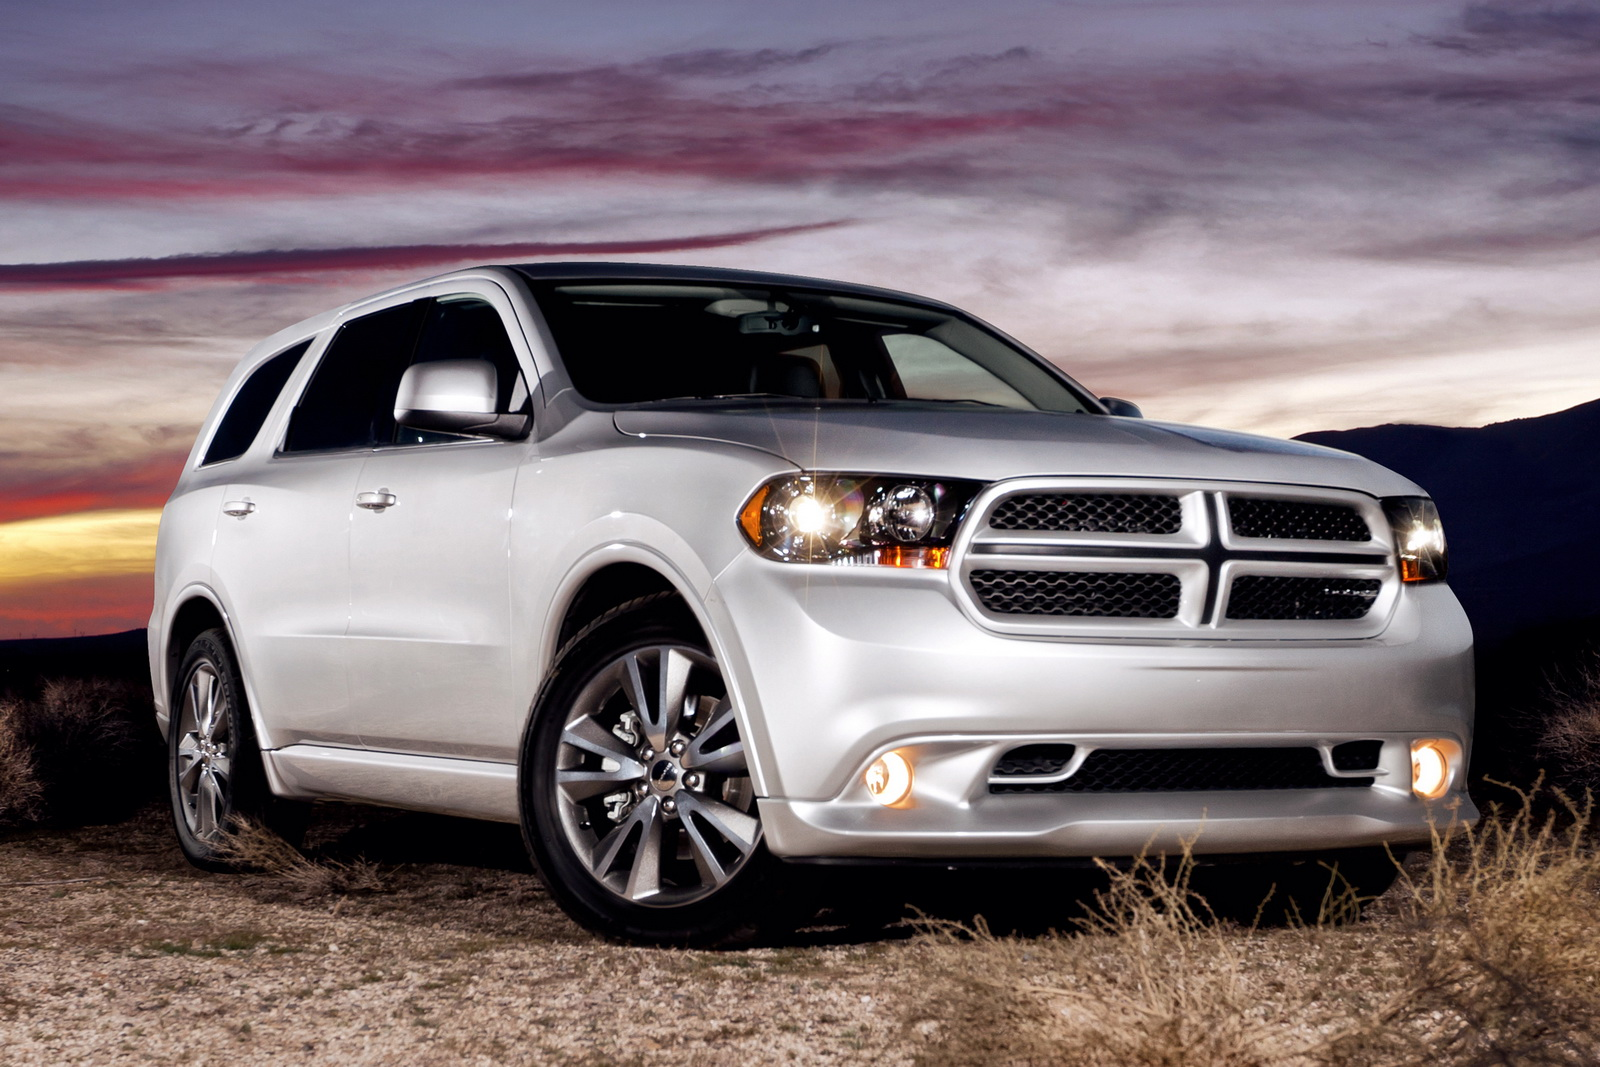 2011 Dodge Mulling Super Durango SRT8 New 2011 Dodge Mulling Super Durango SRT8 revised with 465HP Hemi V8